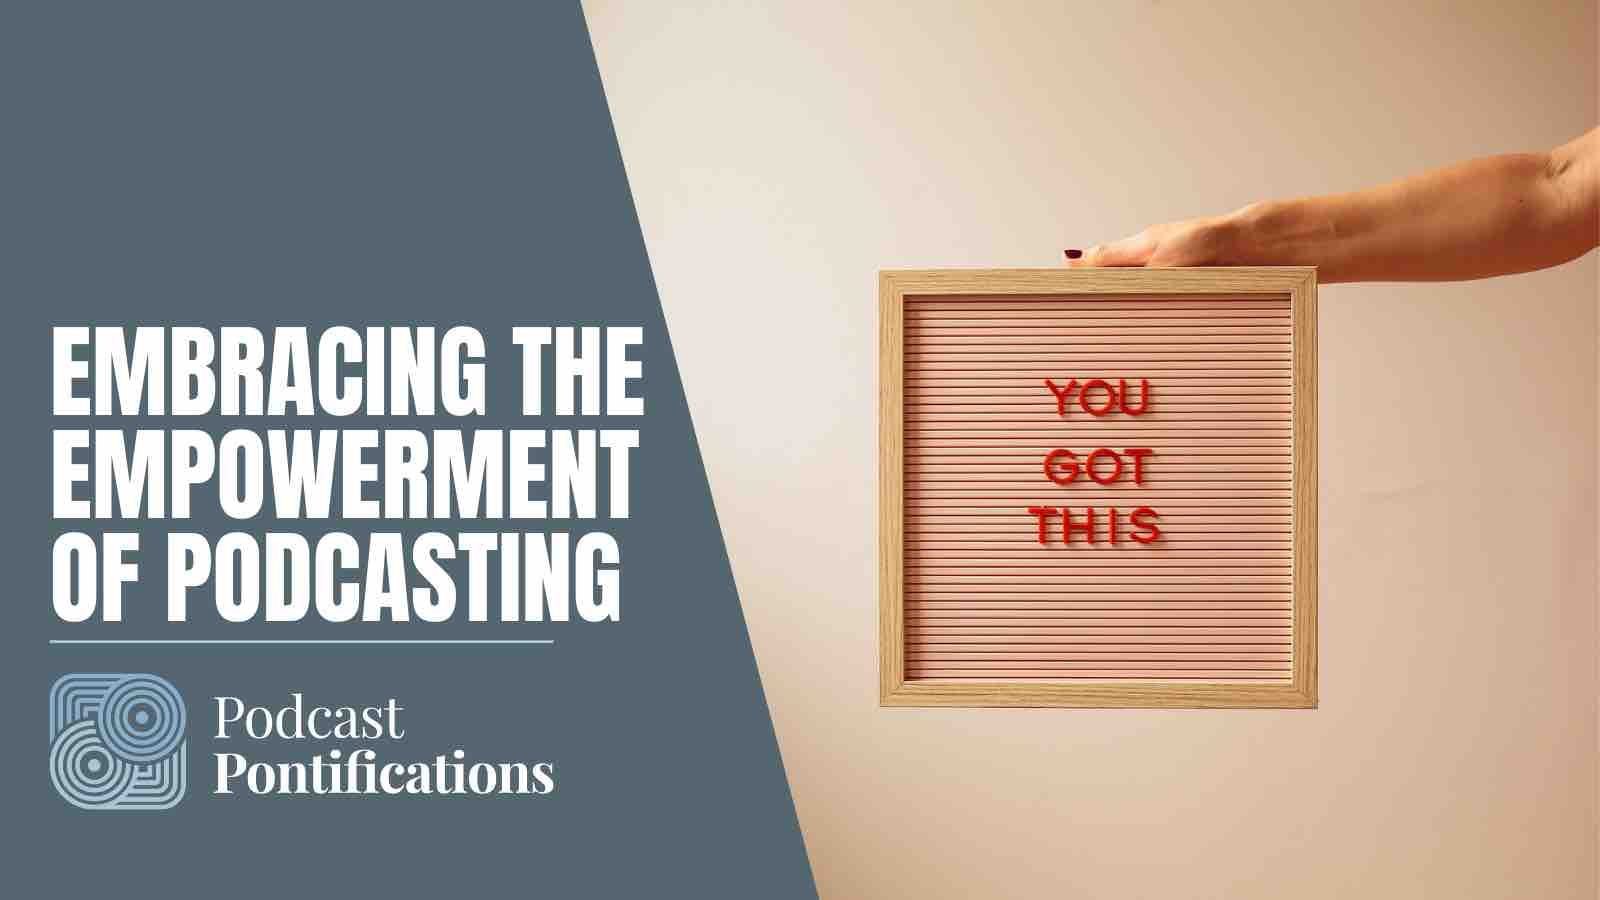 Embracing The Empowerment Of Podcasting